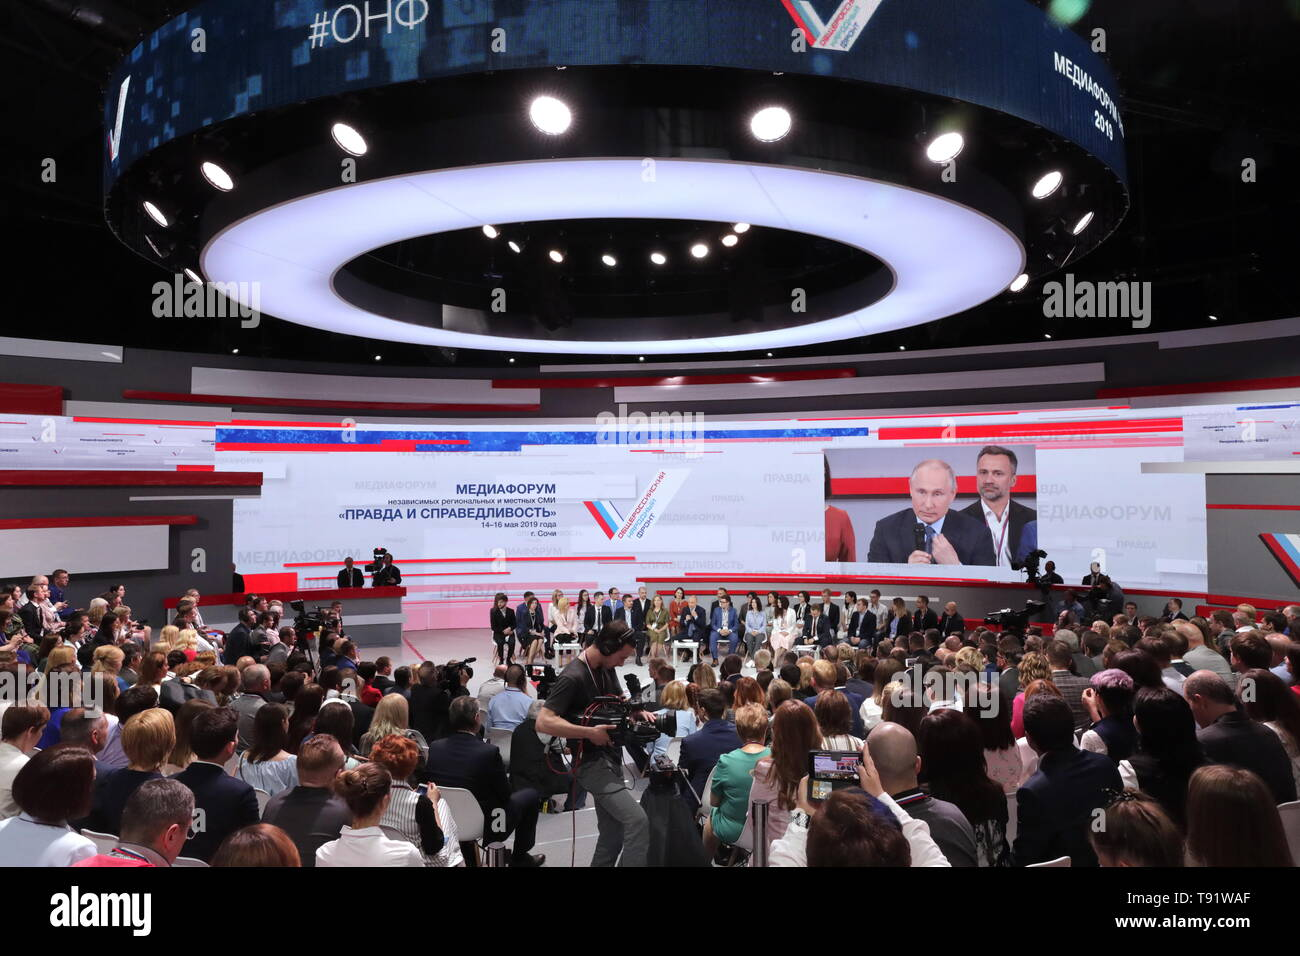 Sochi, Russia. 16th May, 2019. SOCHI, RUSSIA - MAY 16, 2019: A screem shows Russia's President Vladimir Putin speaking at the plenary meeting at the Independent Local and Regional Media Forum held by the All-Russian People's Front. Mikhail Metzel/TASS Credit: ITAR-TASS News Agency/Alamy Live News - Stock Image